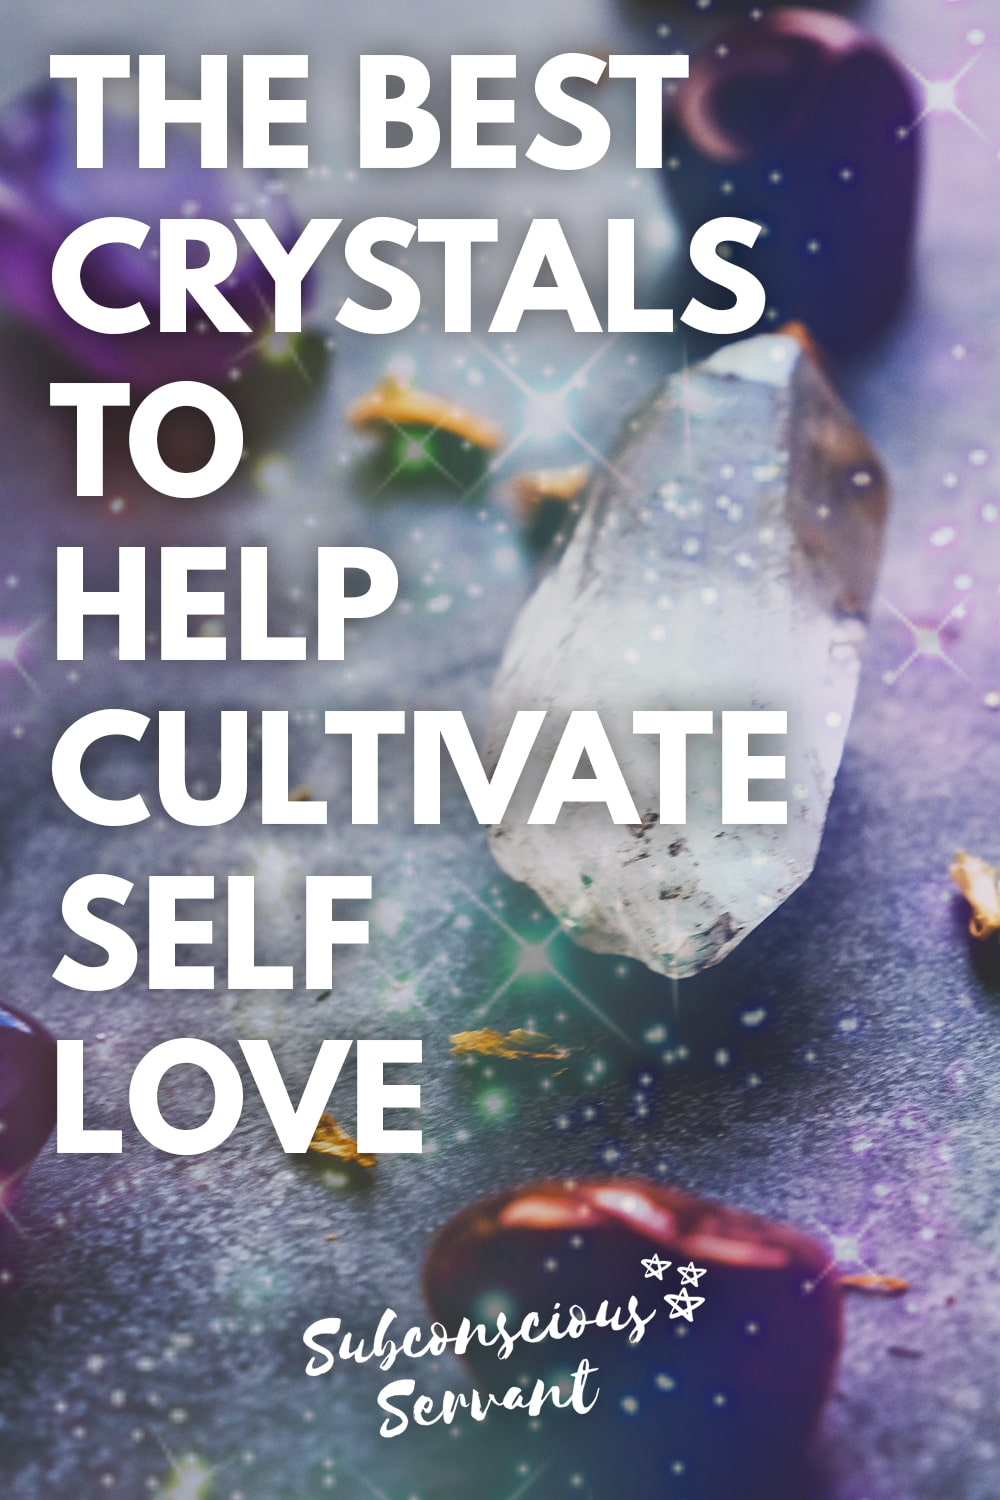 The BEST Crystals To Help Cultivate SELF LOVE